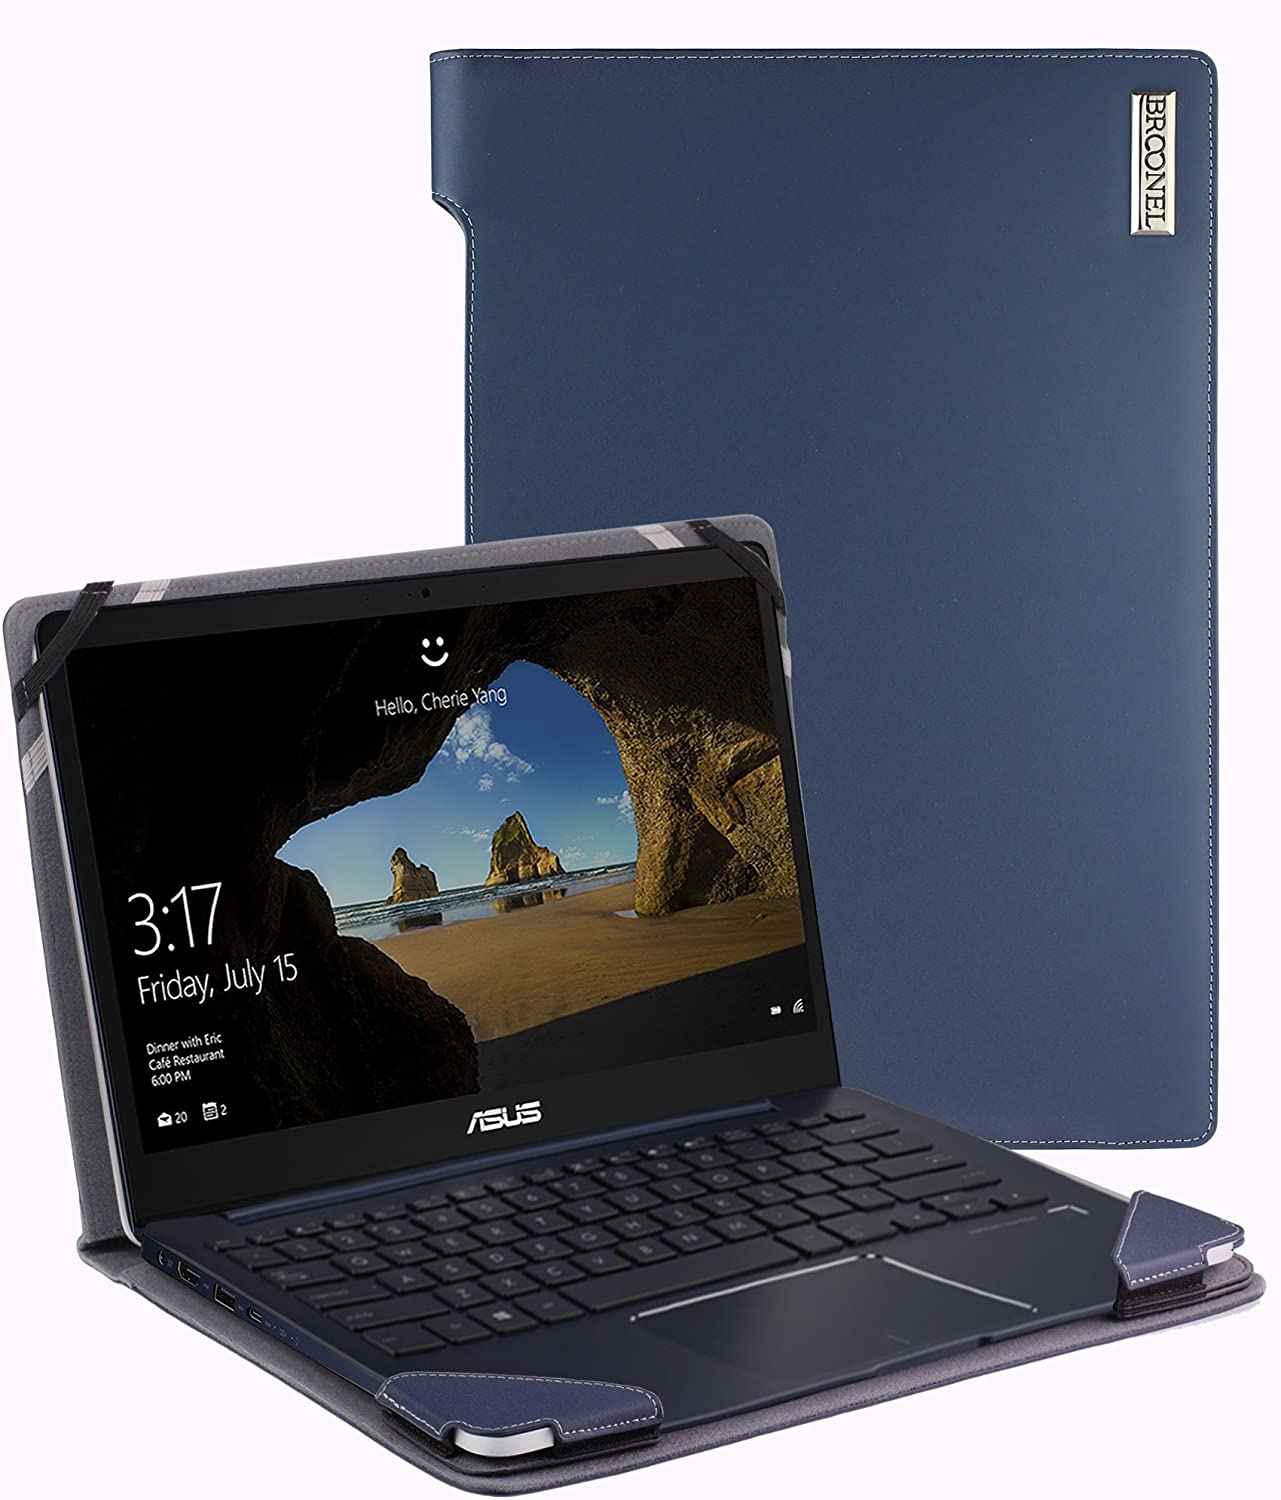 Navitech Broonel - Profile Series - Blue Leather Luxury Laptop Case Compatible with The Acer Chromebook 11, Celeron N3060, 11.6""